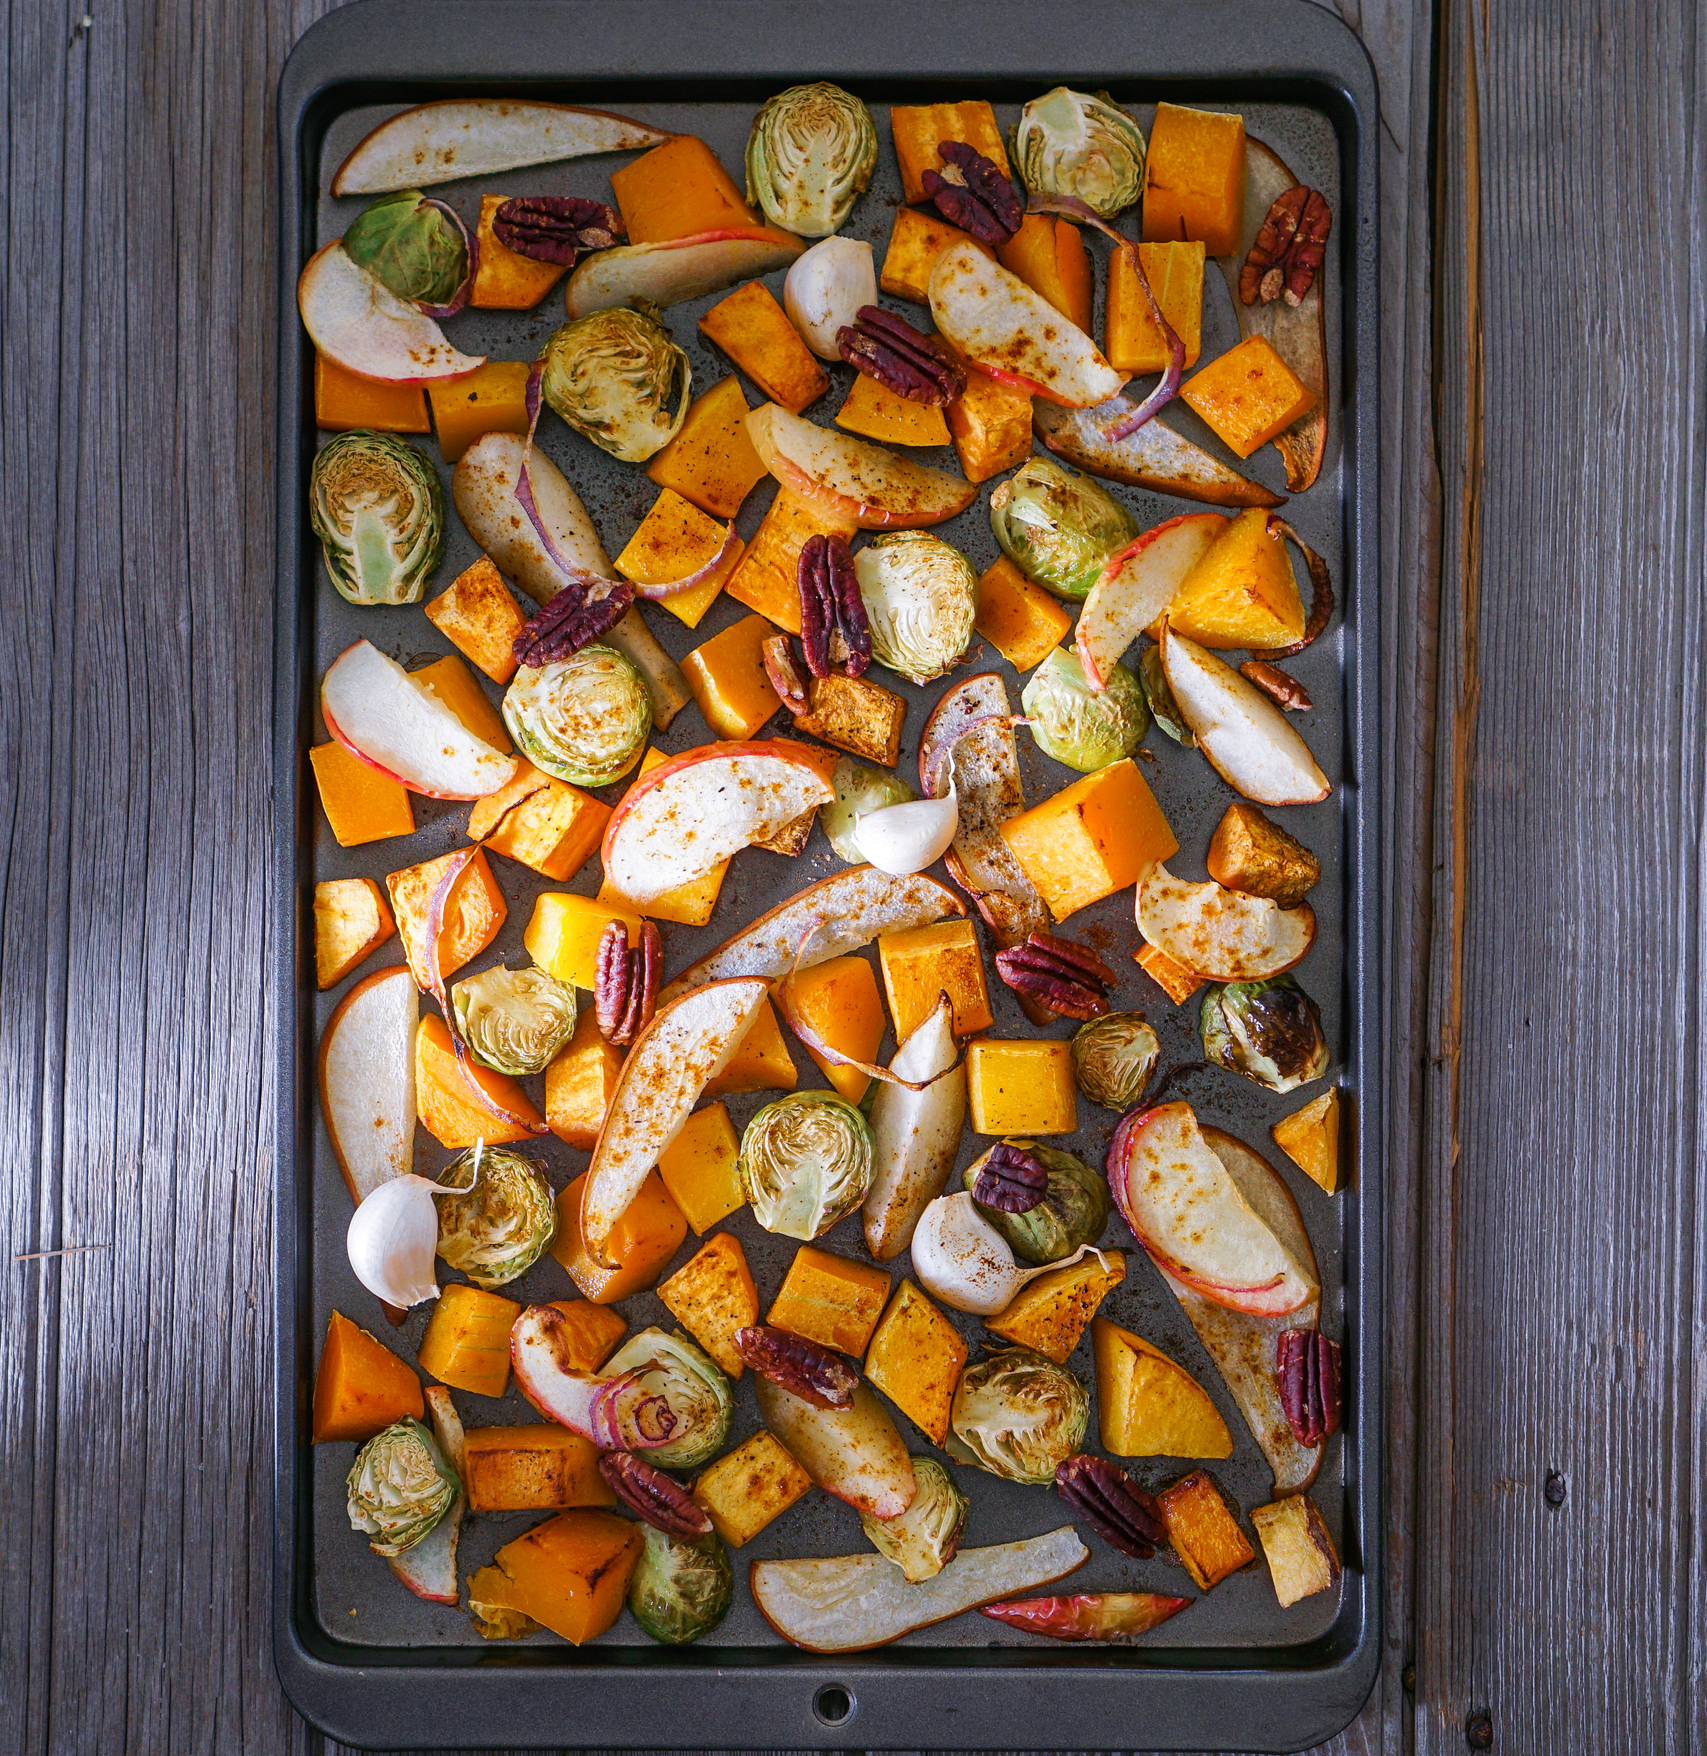 ROASTED VEGGIES ARE EASY!